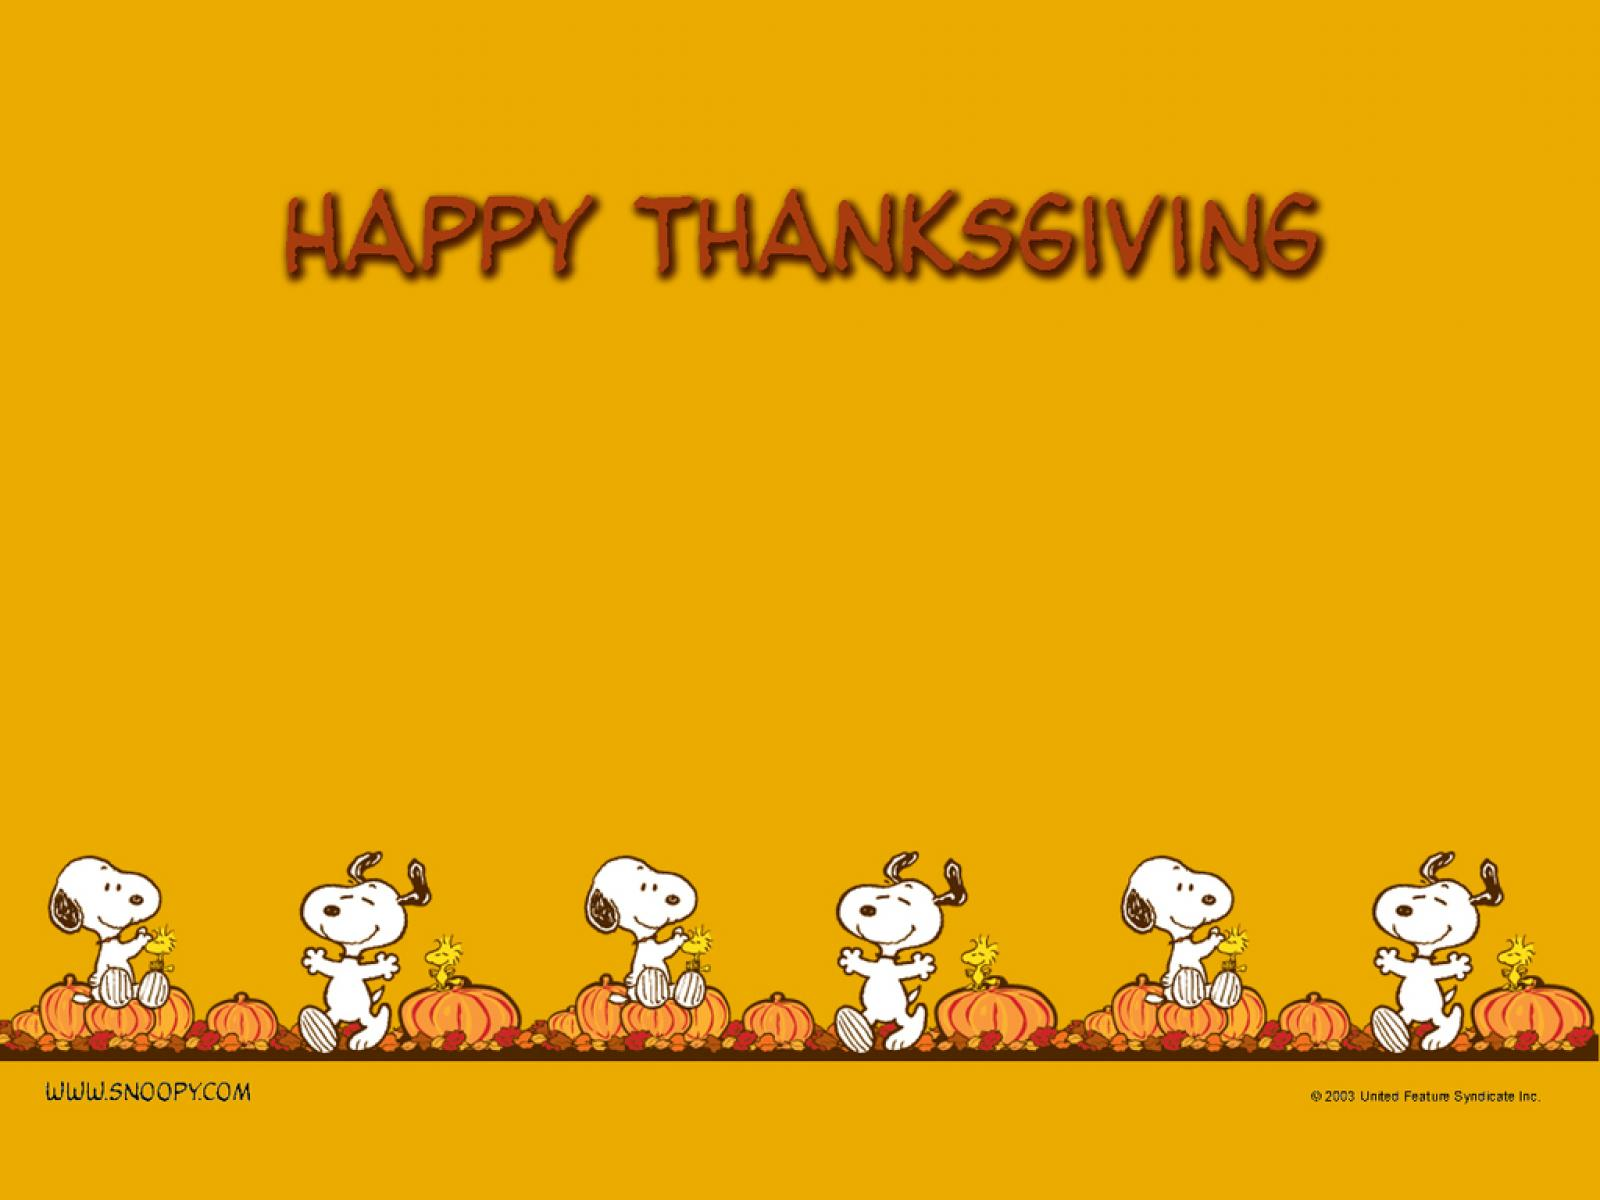 get your desktop ready for thanksgiving with these wallpapers